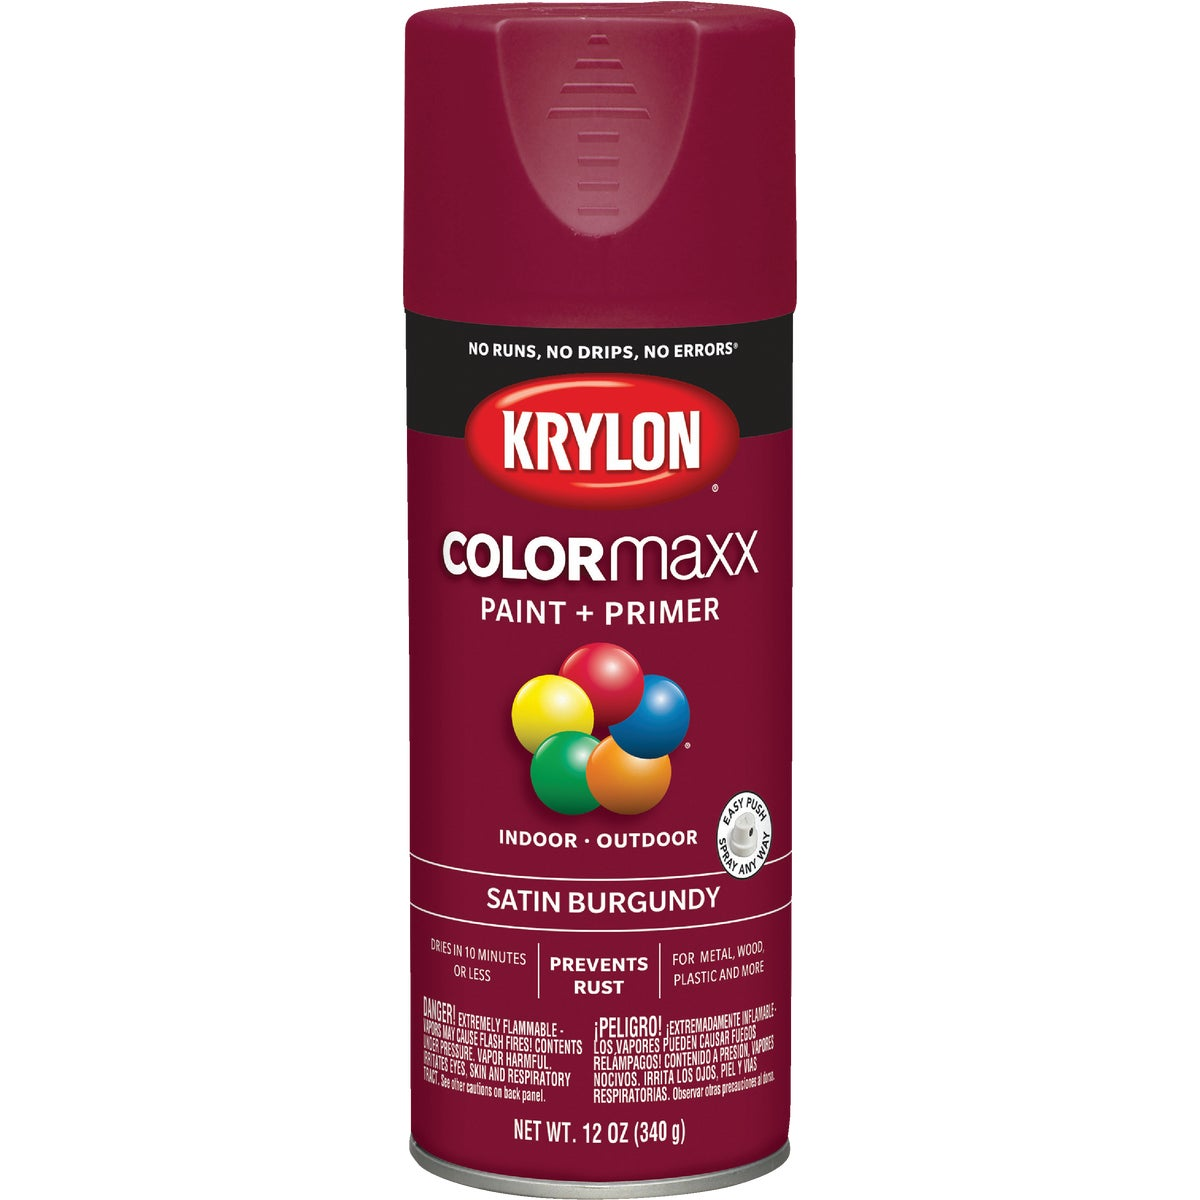 SAT BURGUNDY SPRAY PAINT - 53503 by Krylon/consumer Div